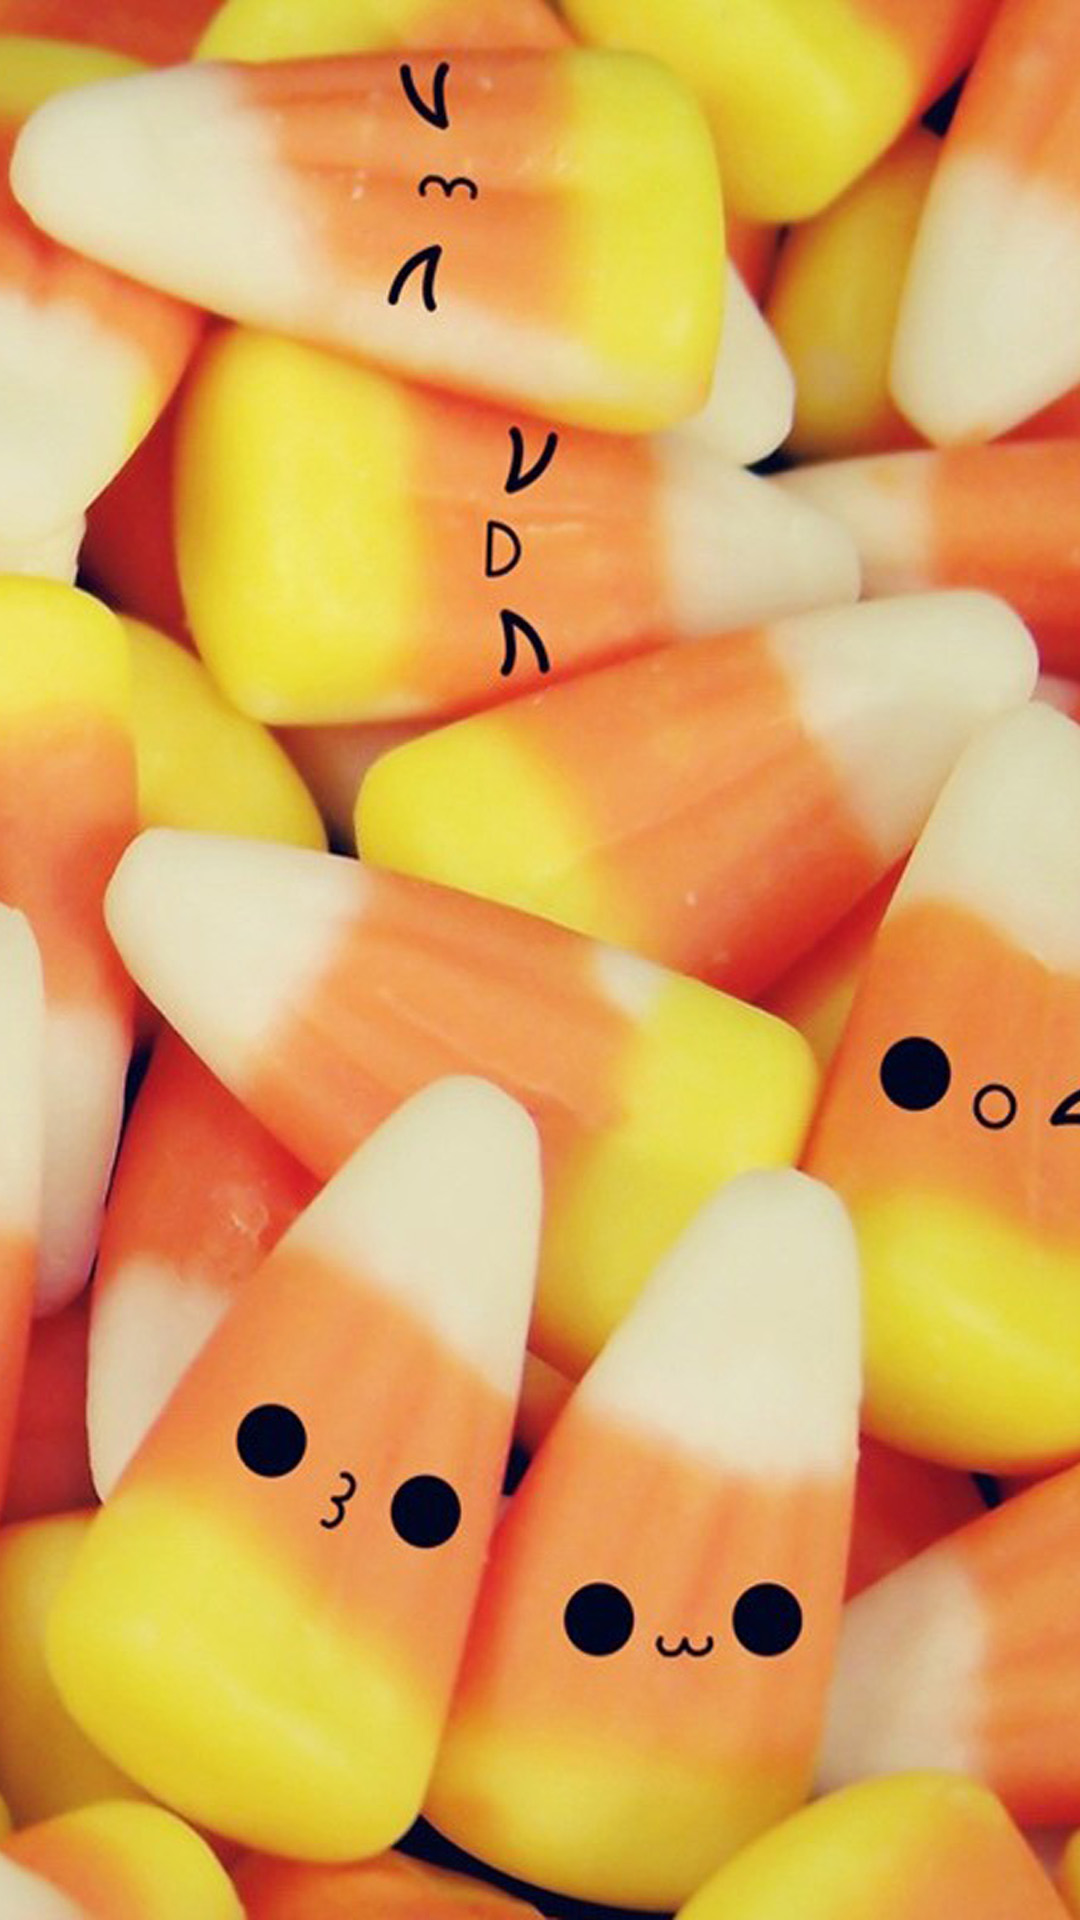 Cute Candy iPhone 6 Wallpaper Download iPhone Wallpapers iPad 1080x1920